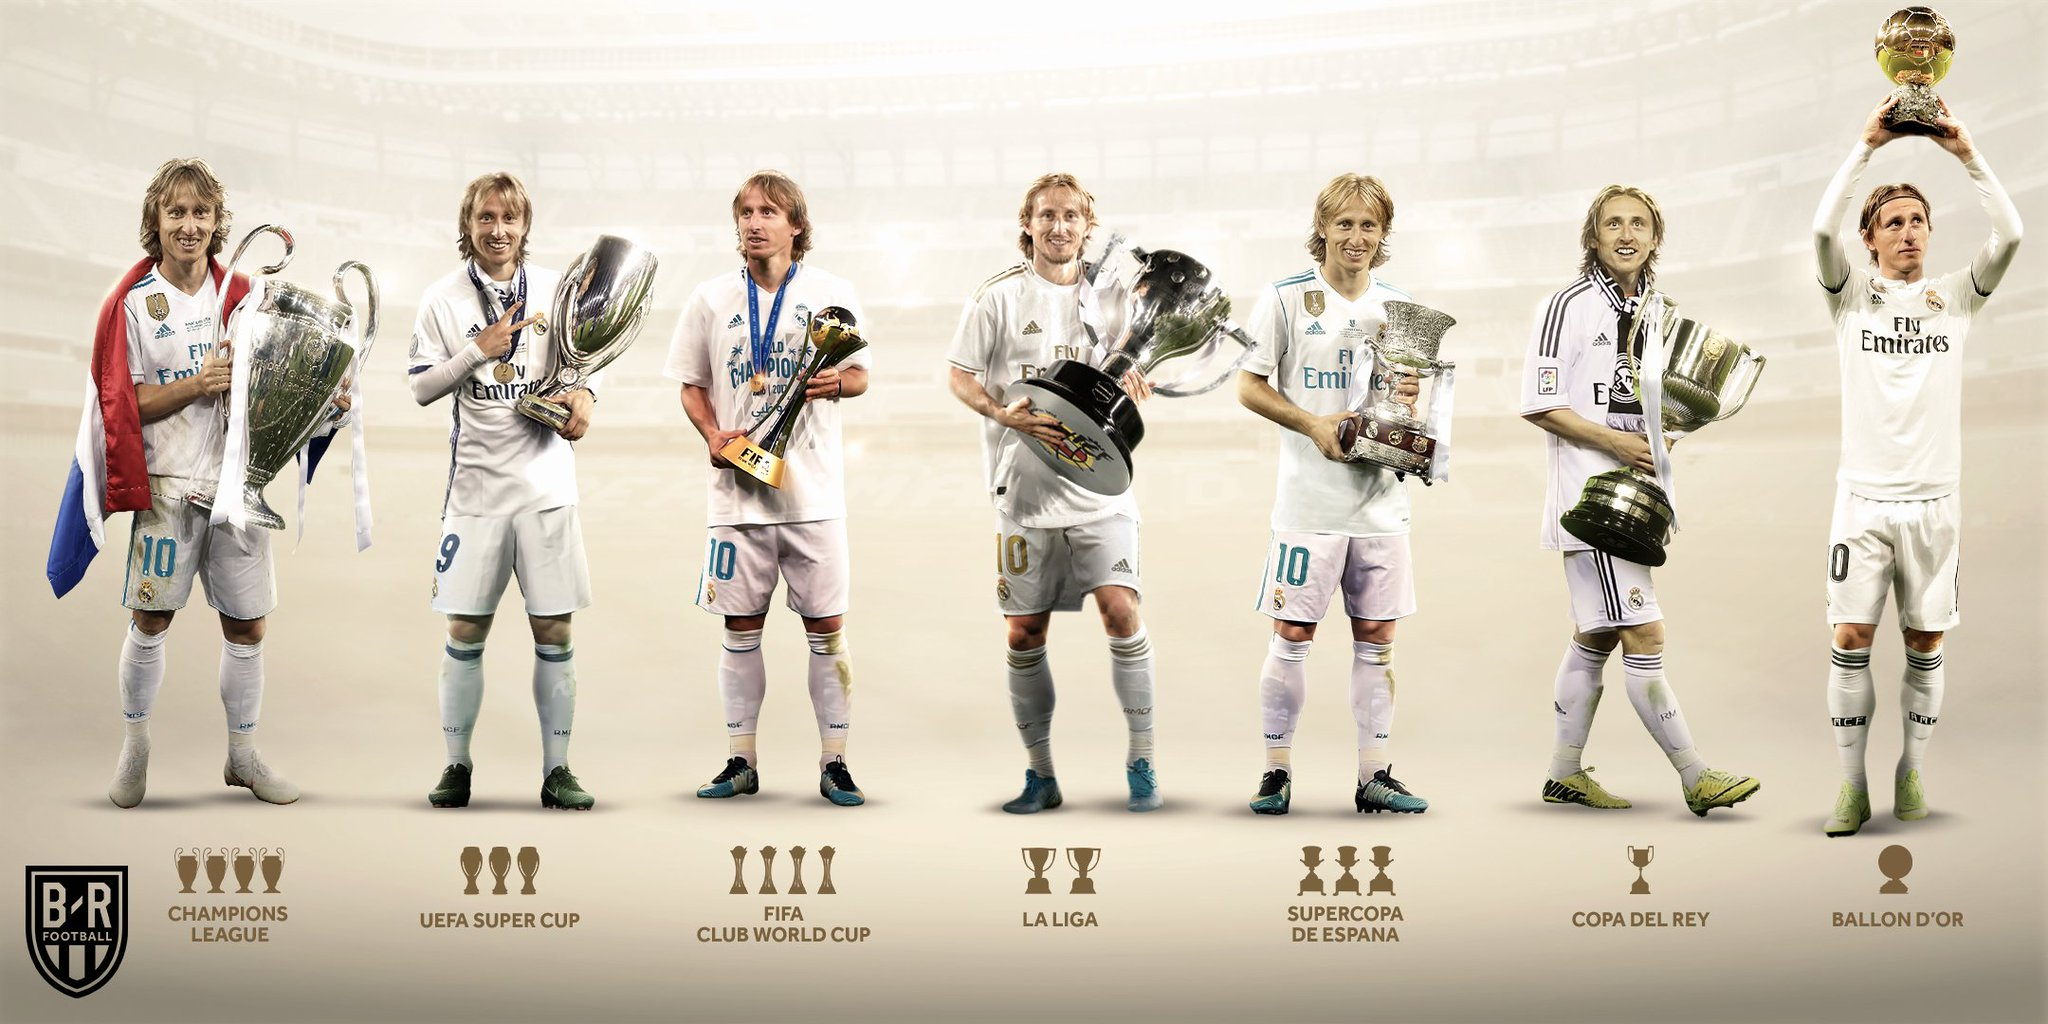 Luka Modric has officially signed a contract extension at Real Madrid